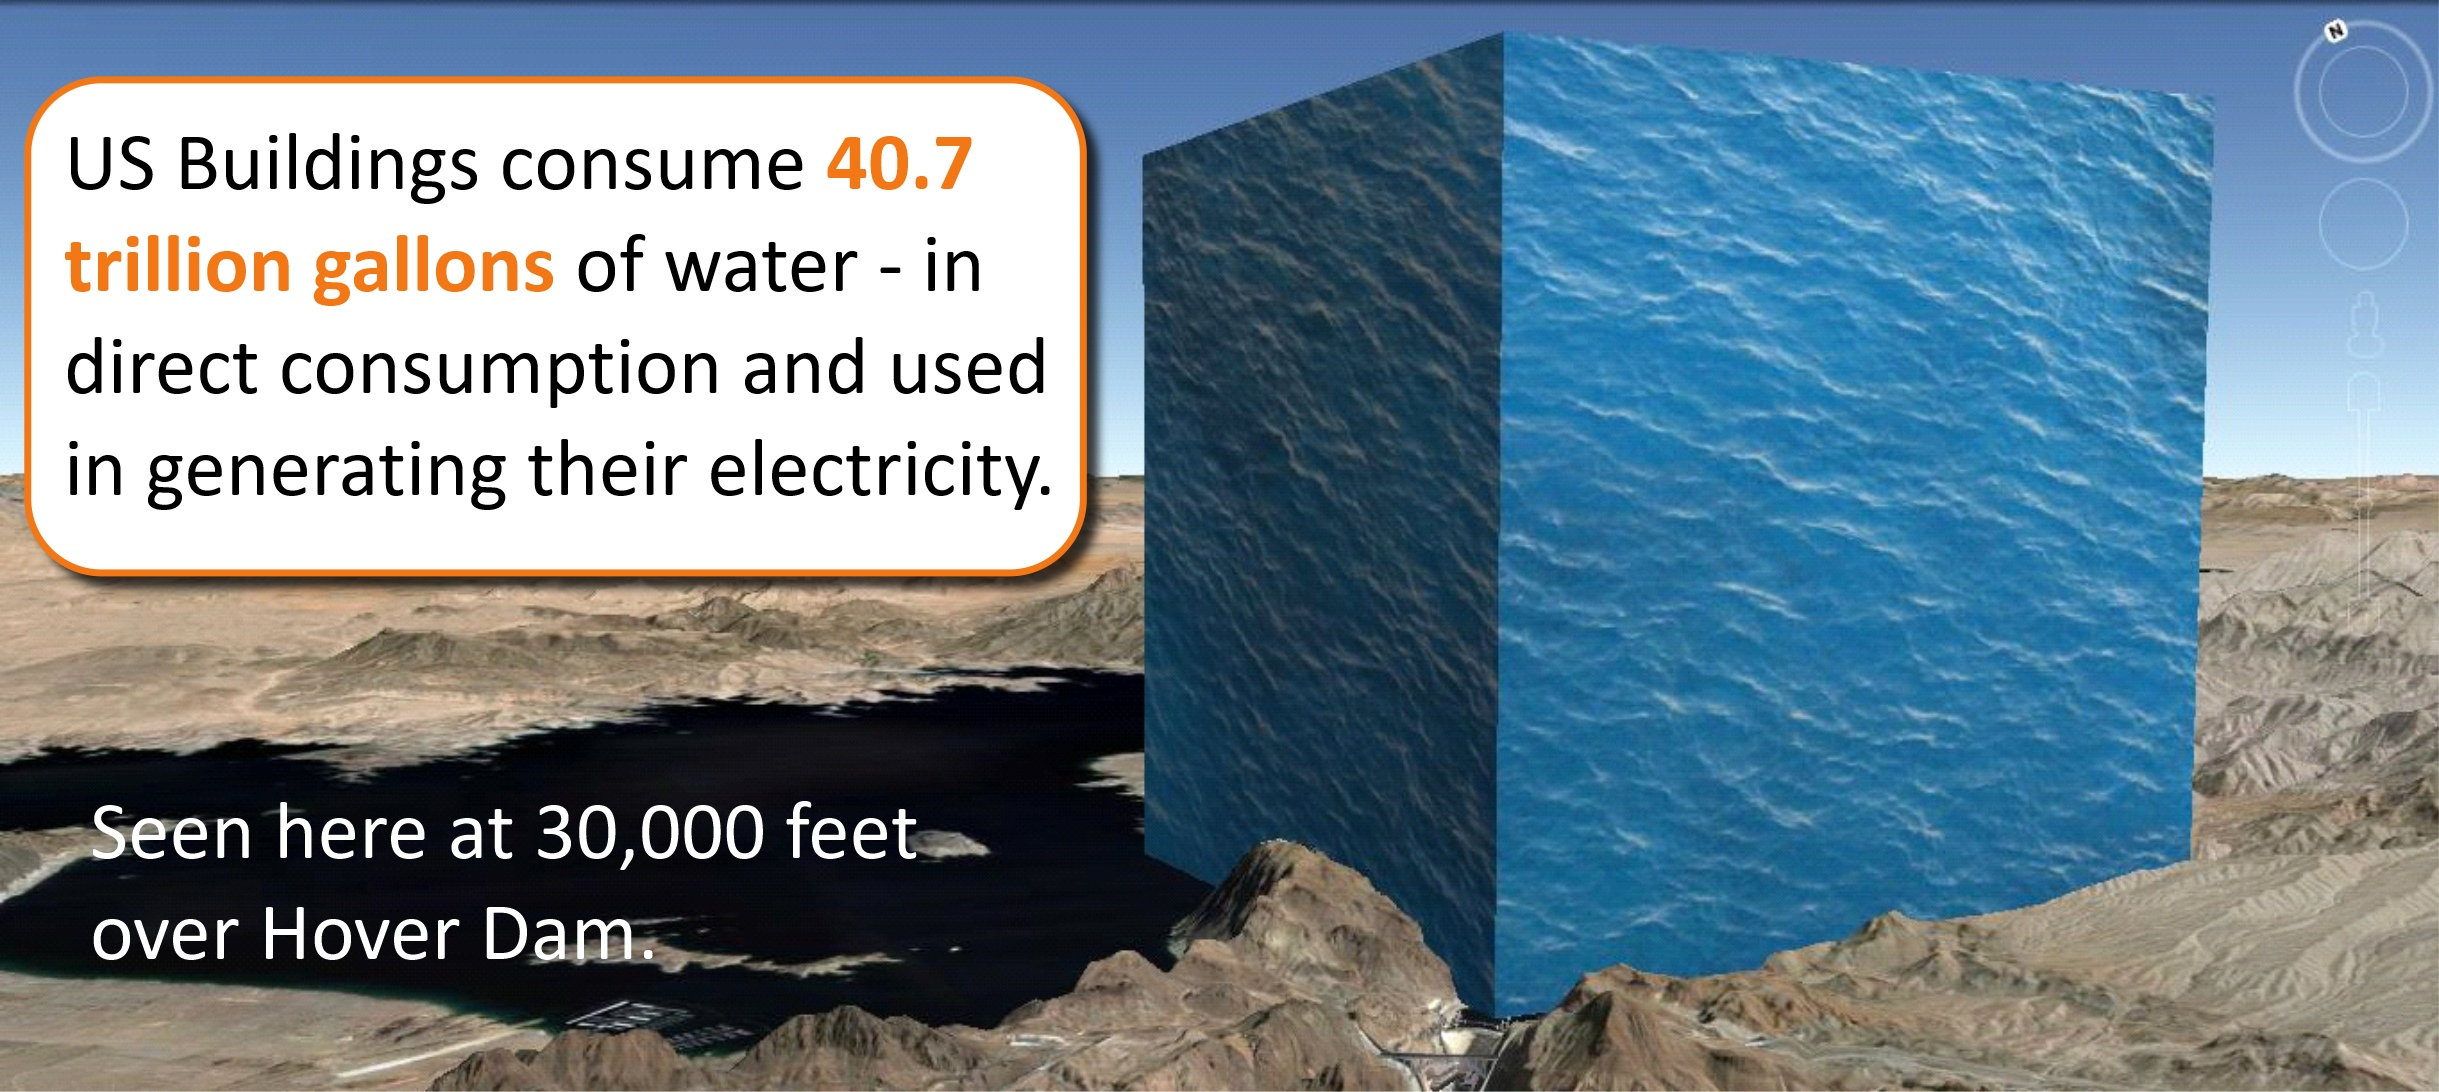 Annual water use by buildings - both direct use and water used to generate electricity.